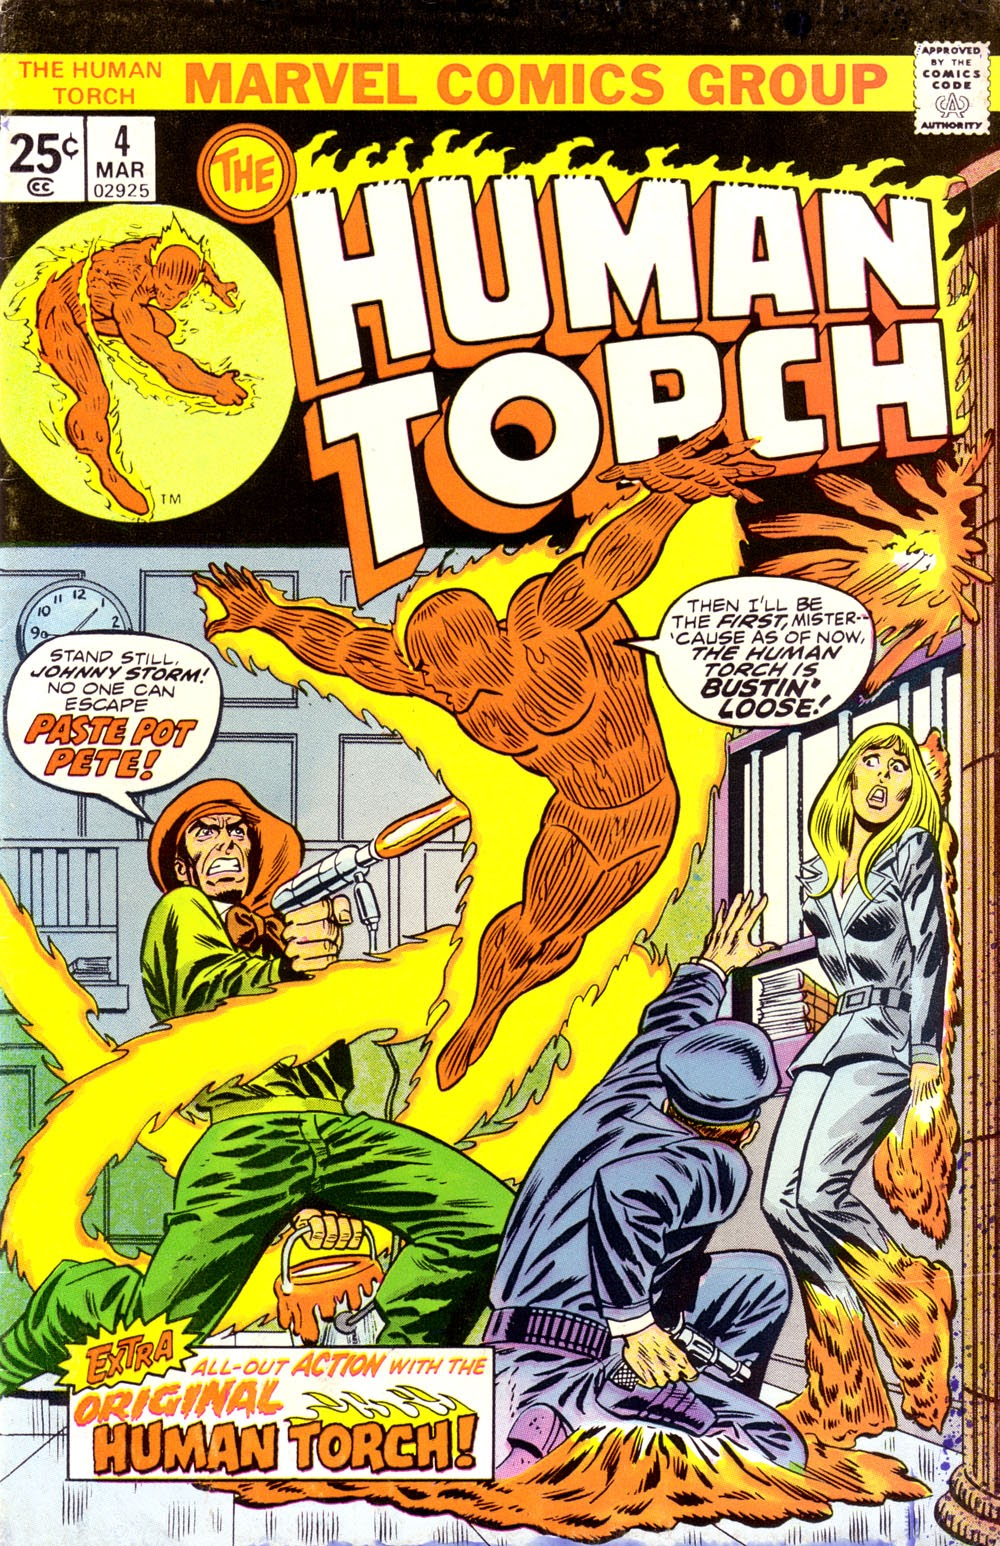 The Human Torch (1974) 4 Page 1